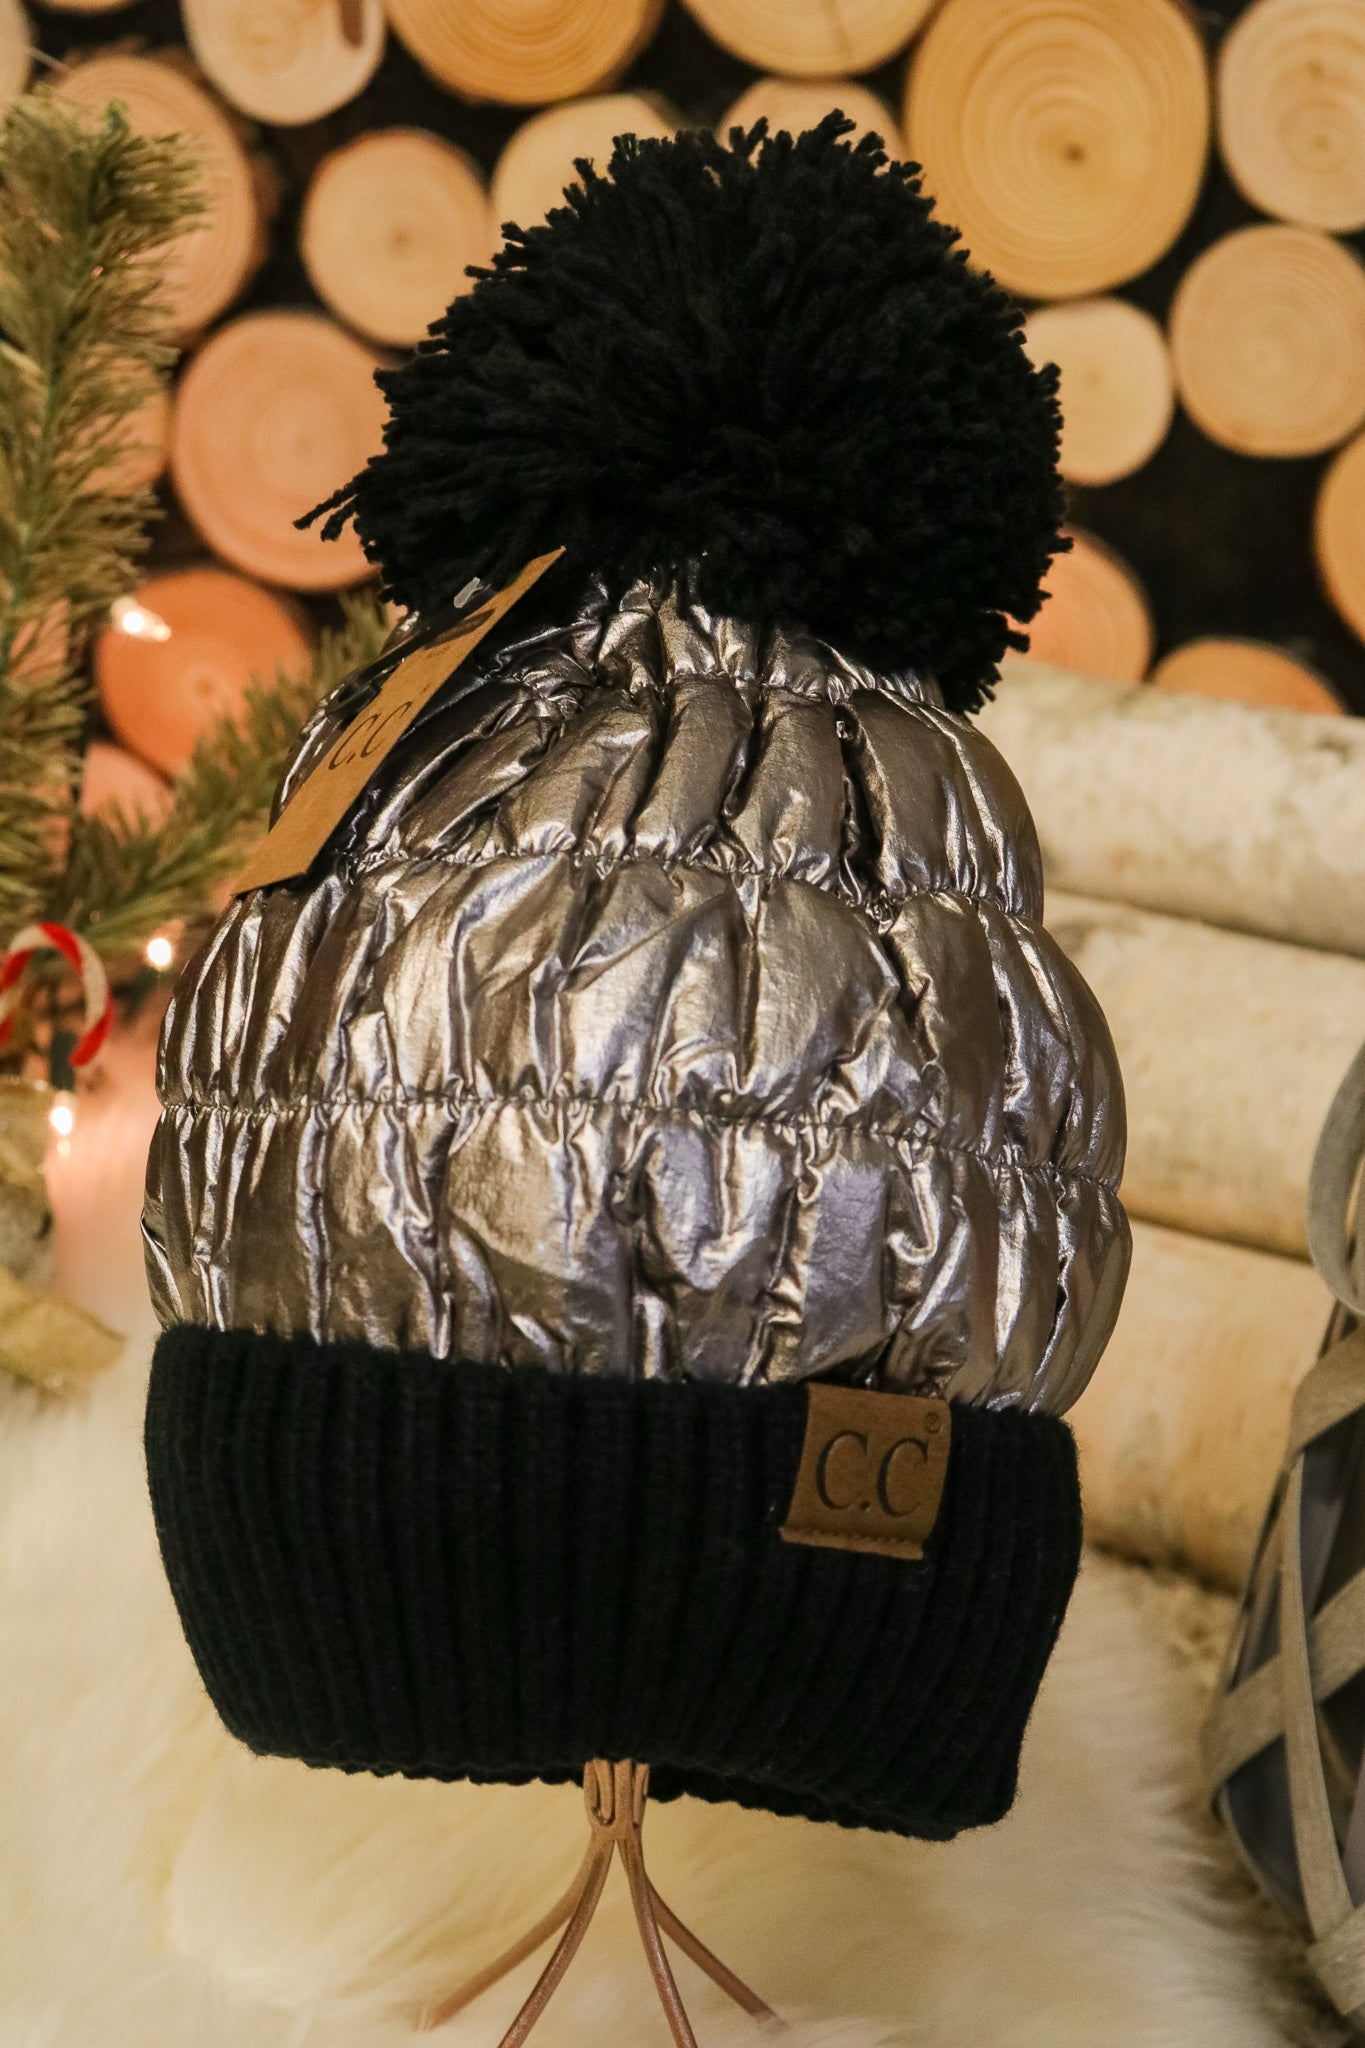 Starlight Pom Beanie 1 - JQ Clothing Co. - Oakes, ND